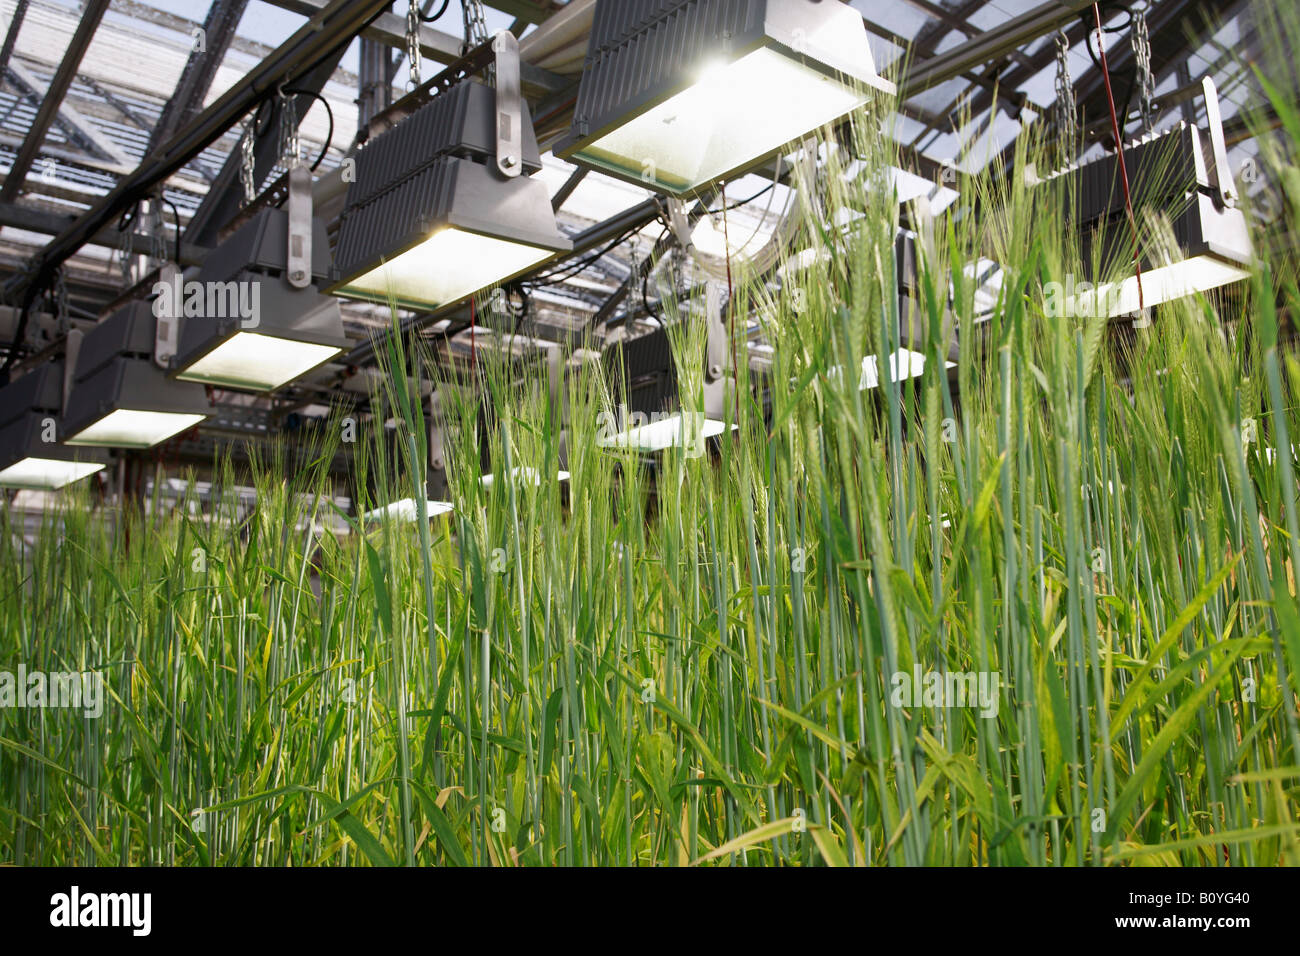 Orzo (Hordeum vulgare), pannocchie, close up Immagini Stock